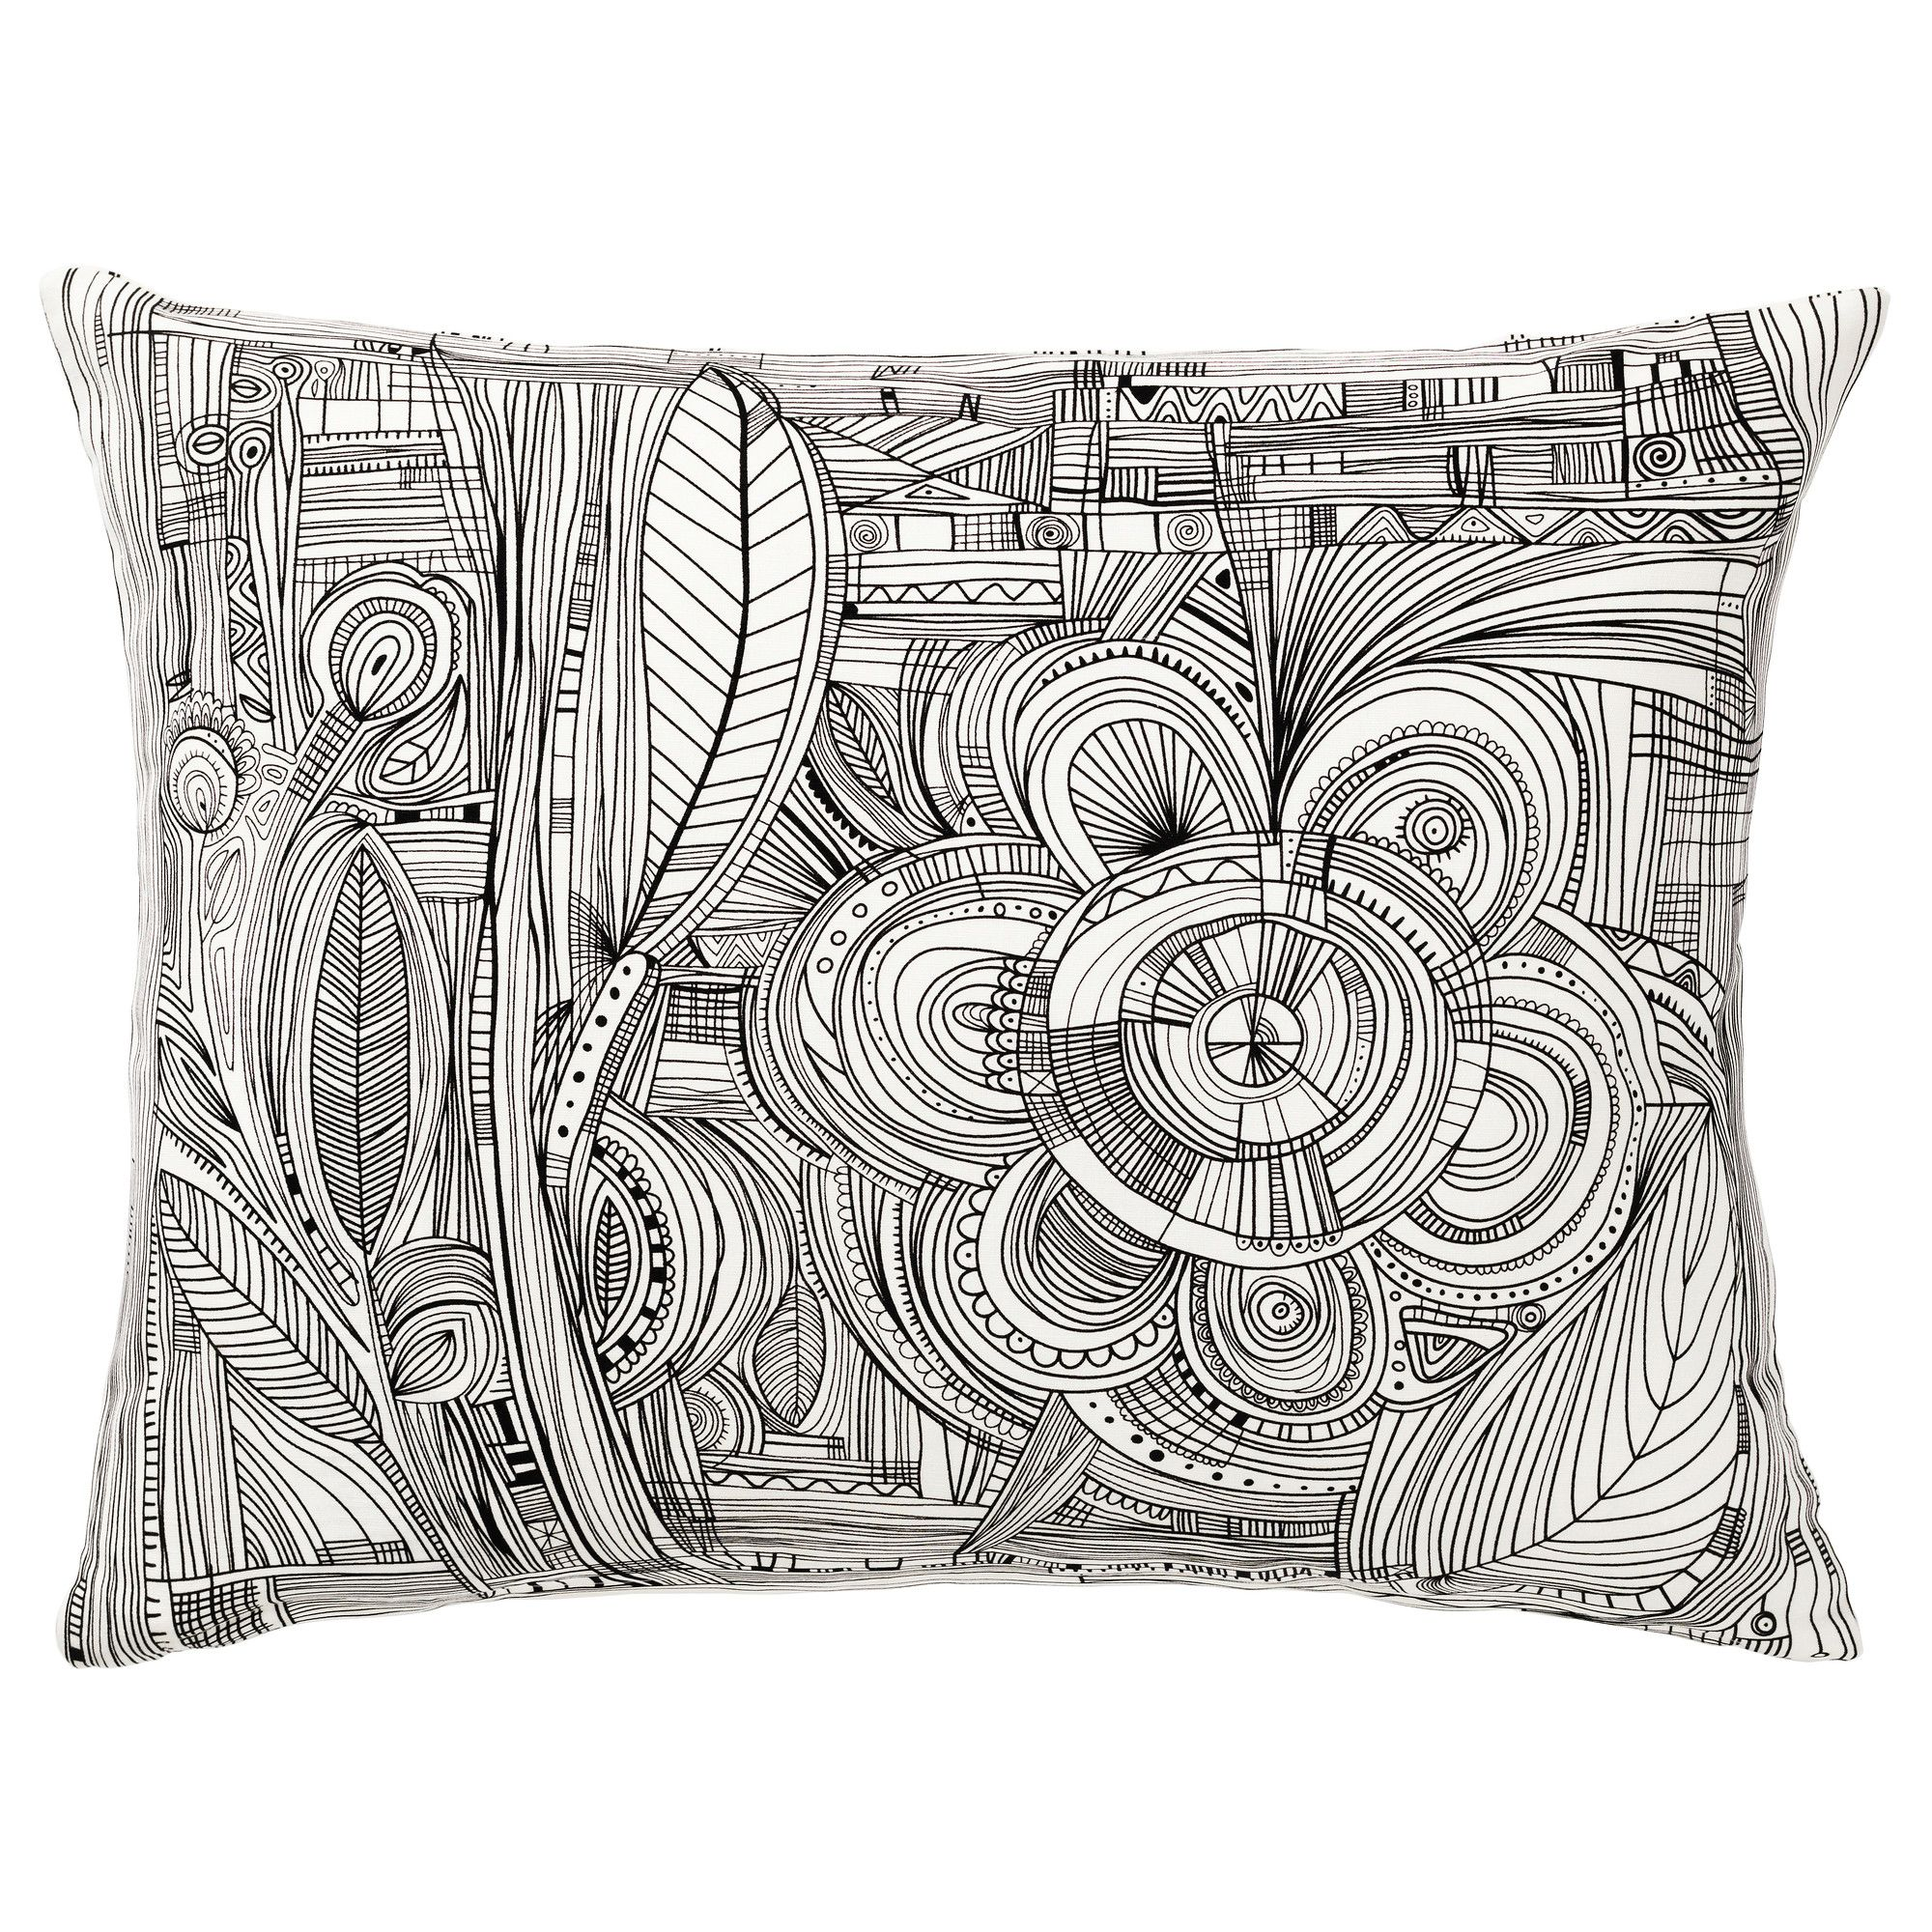 Awe Inspiring Eivor Cushion Ikea For Our Black And White Living Room Download Free Architecture Designs Scobabritishbridgeorg